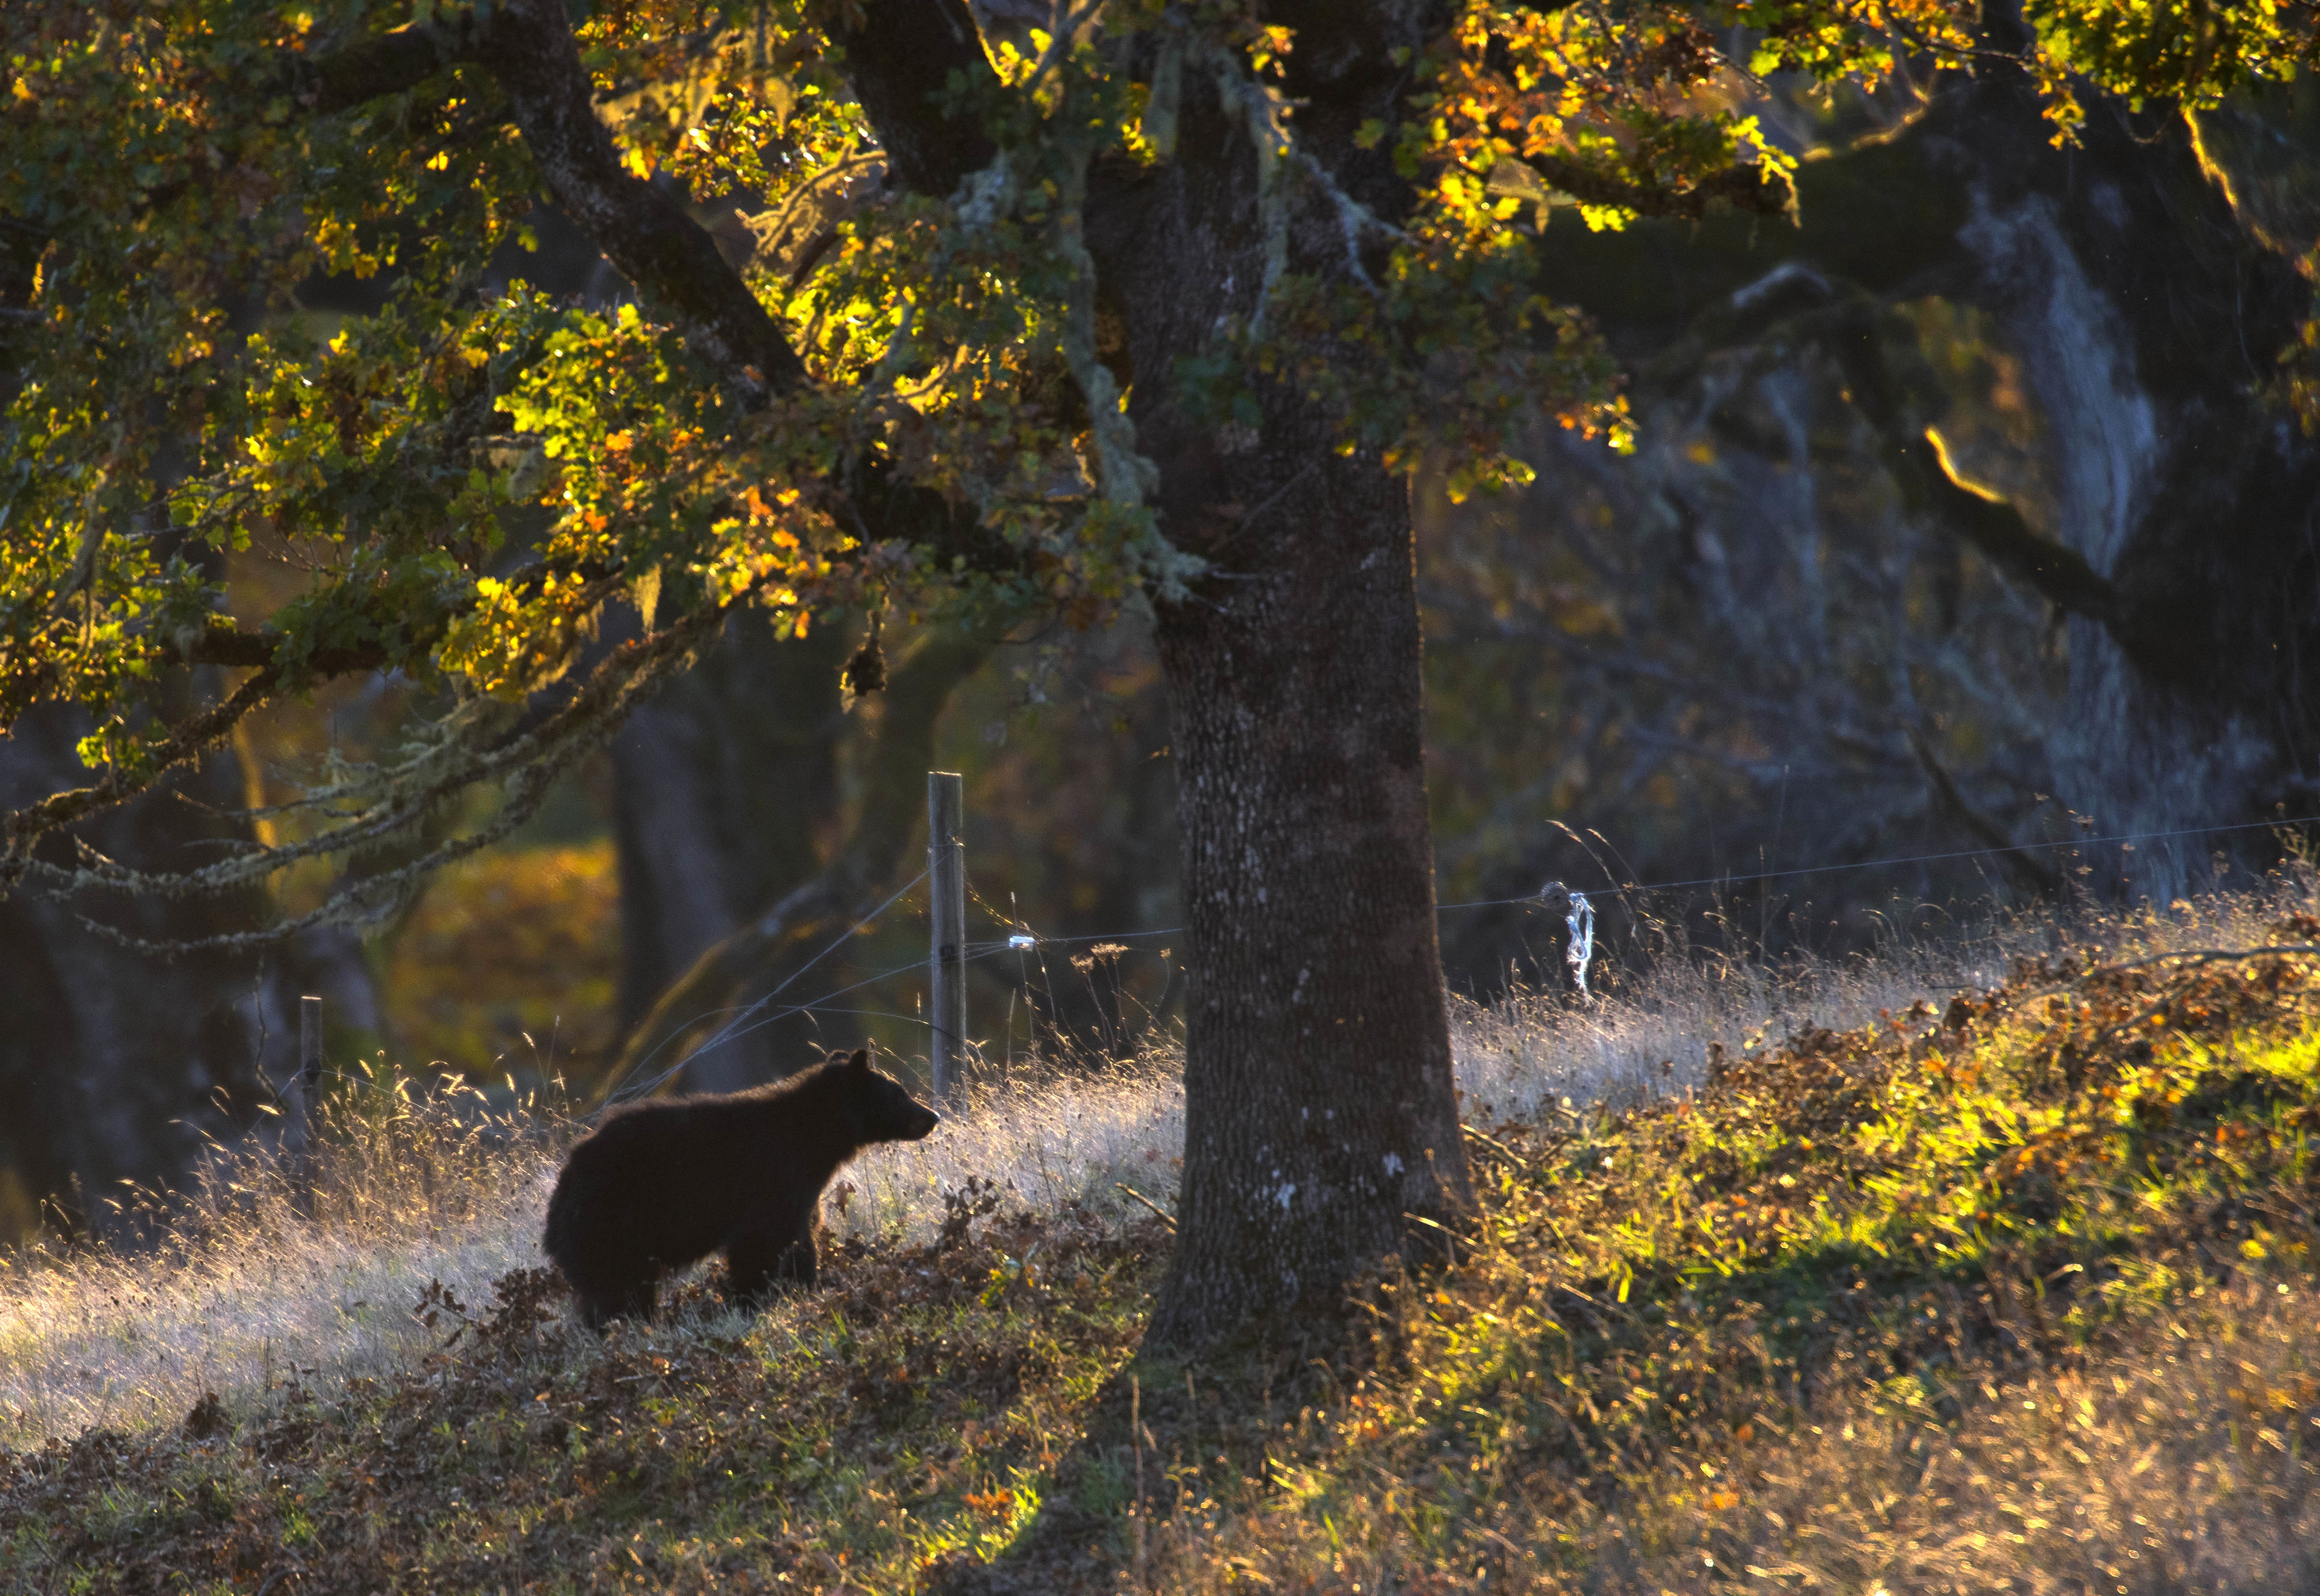 Black bears are pretty common in the area, but usually avoid humans. Credit: PA